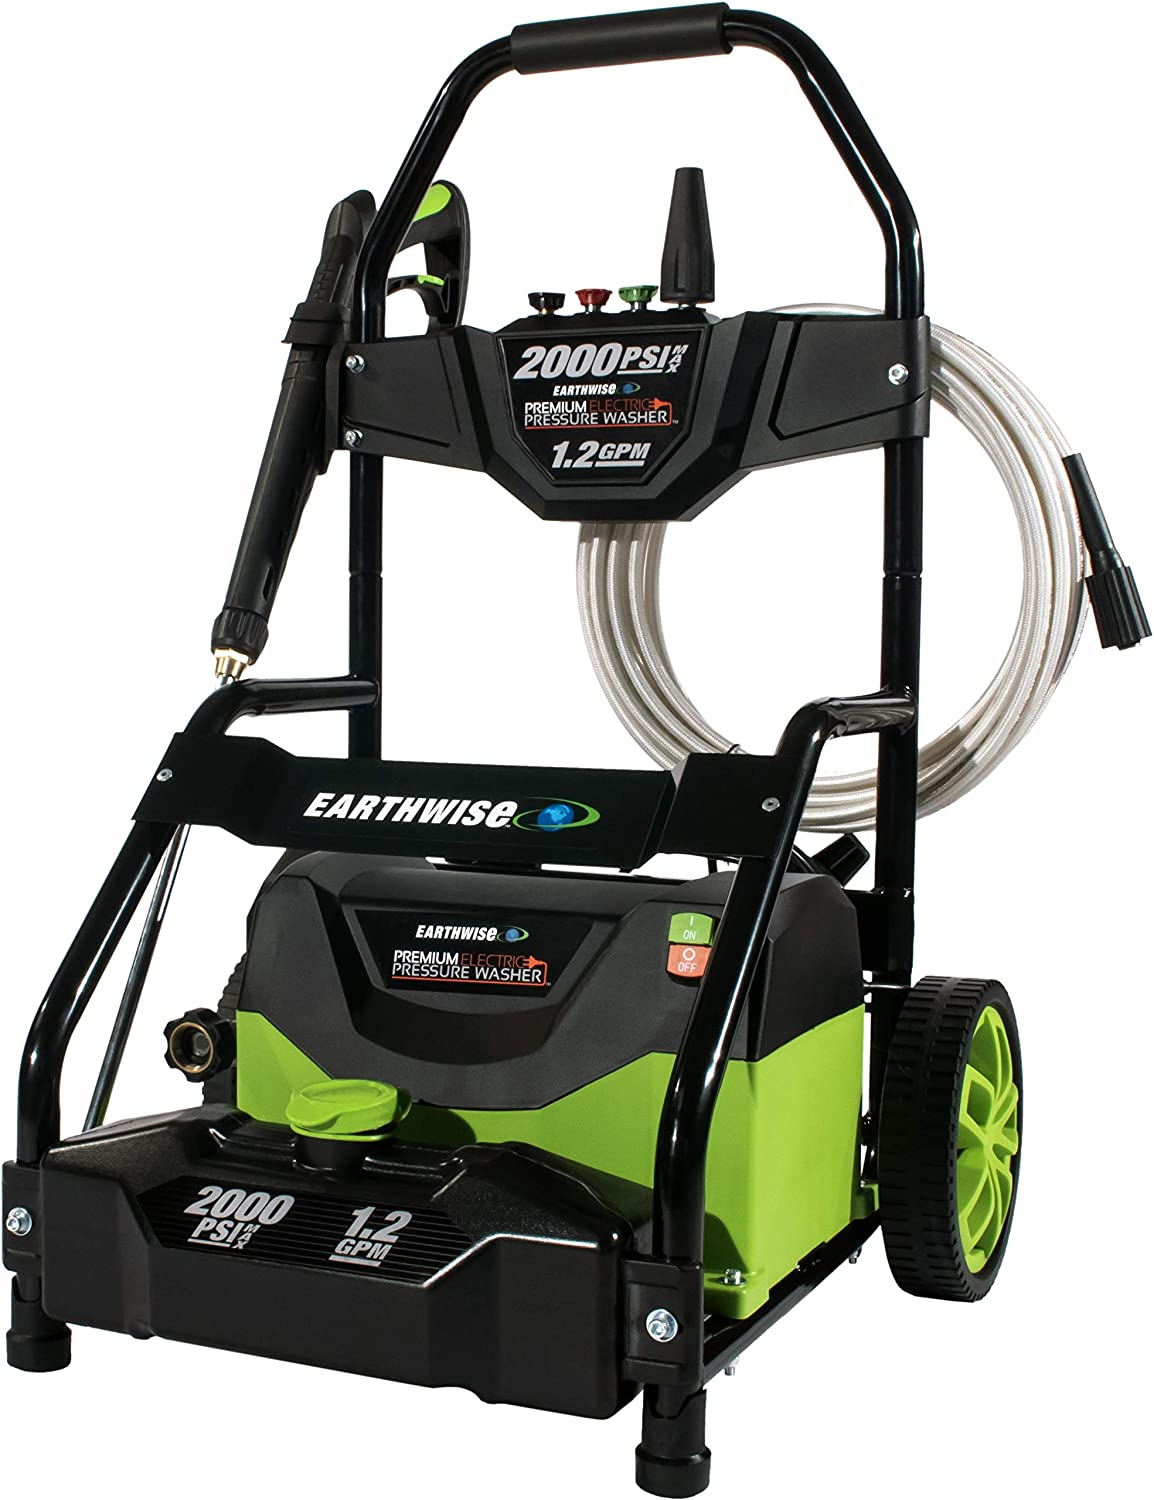 Amazon.com : Earthwise PW20004 2000 PSI 1.2GPM 13-Amp Electric Pressure Washer : Garden & Outdoor